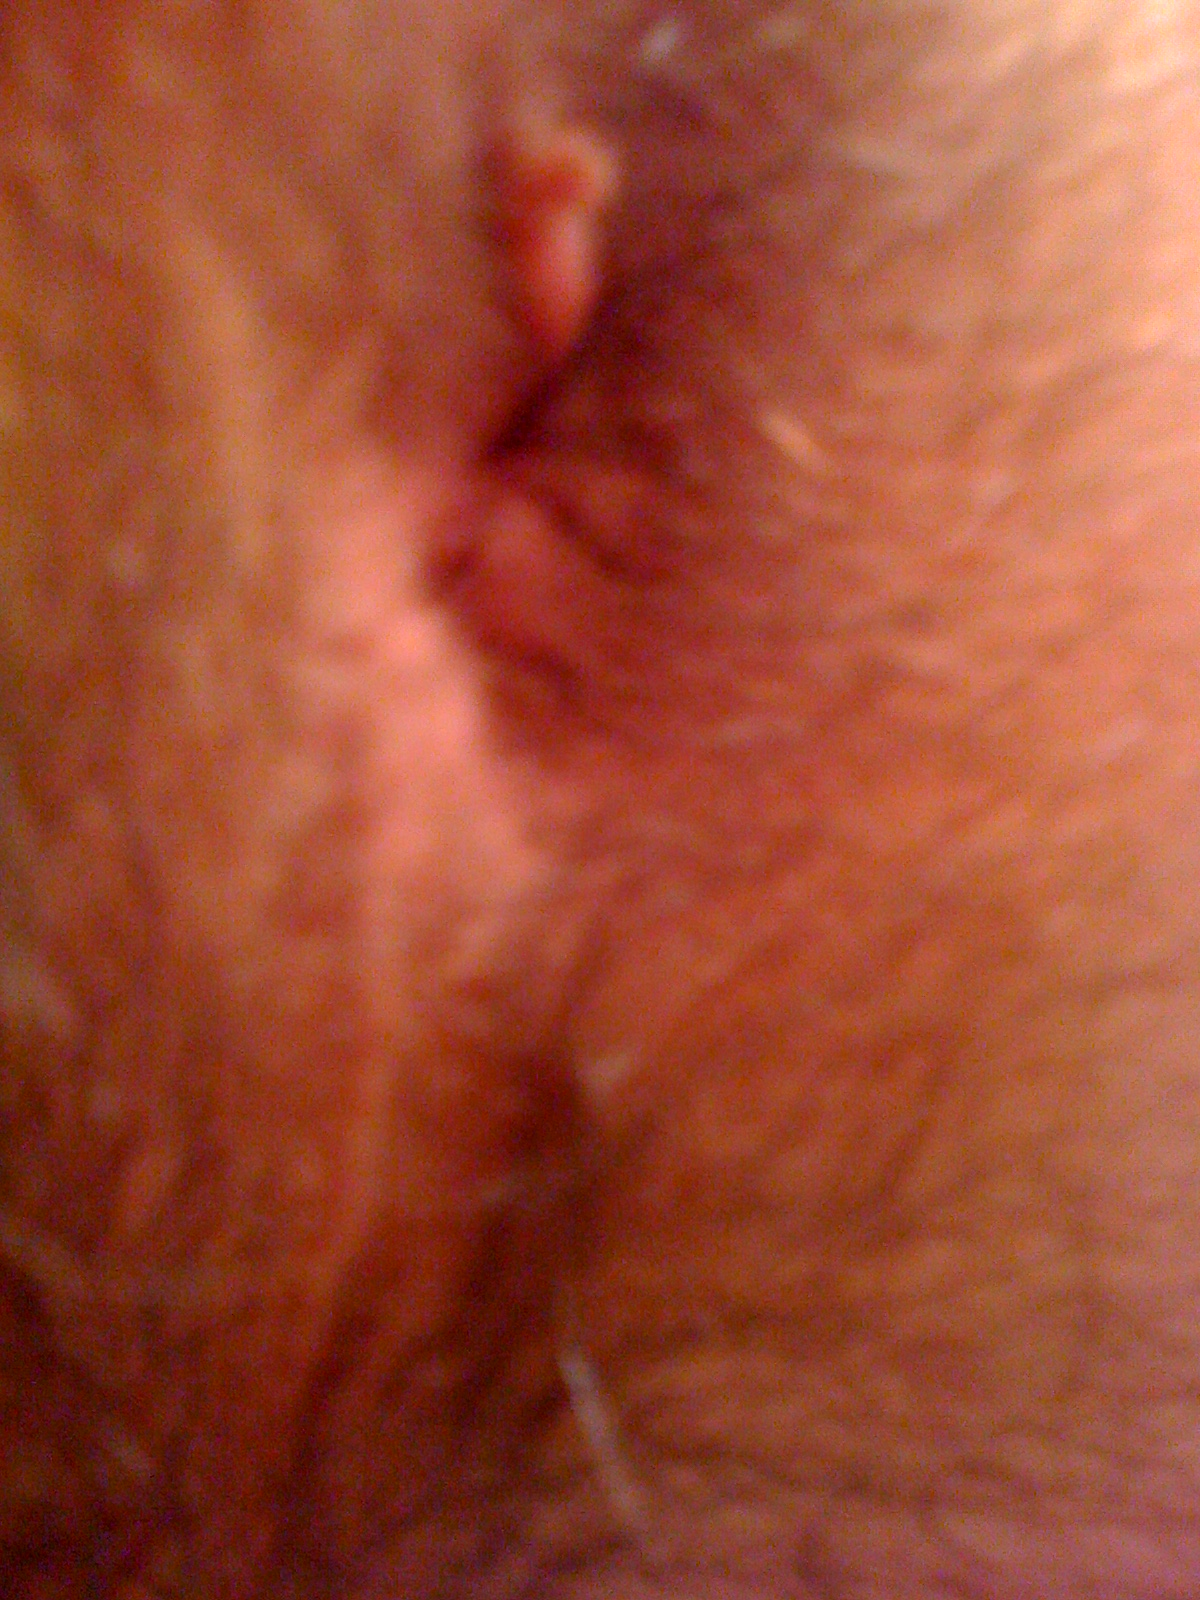 Lump coming out of anus